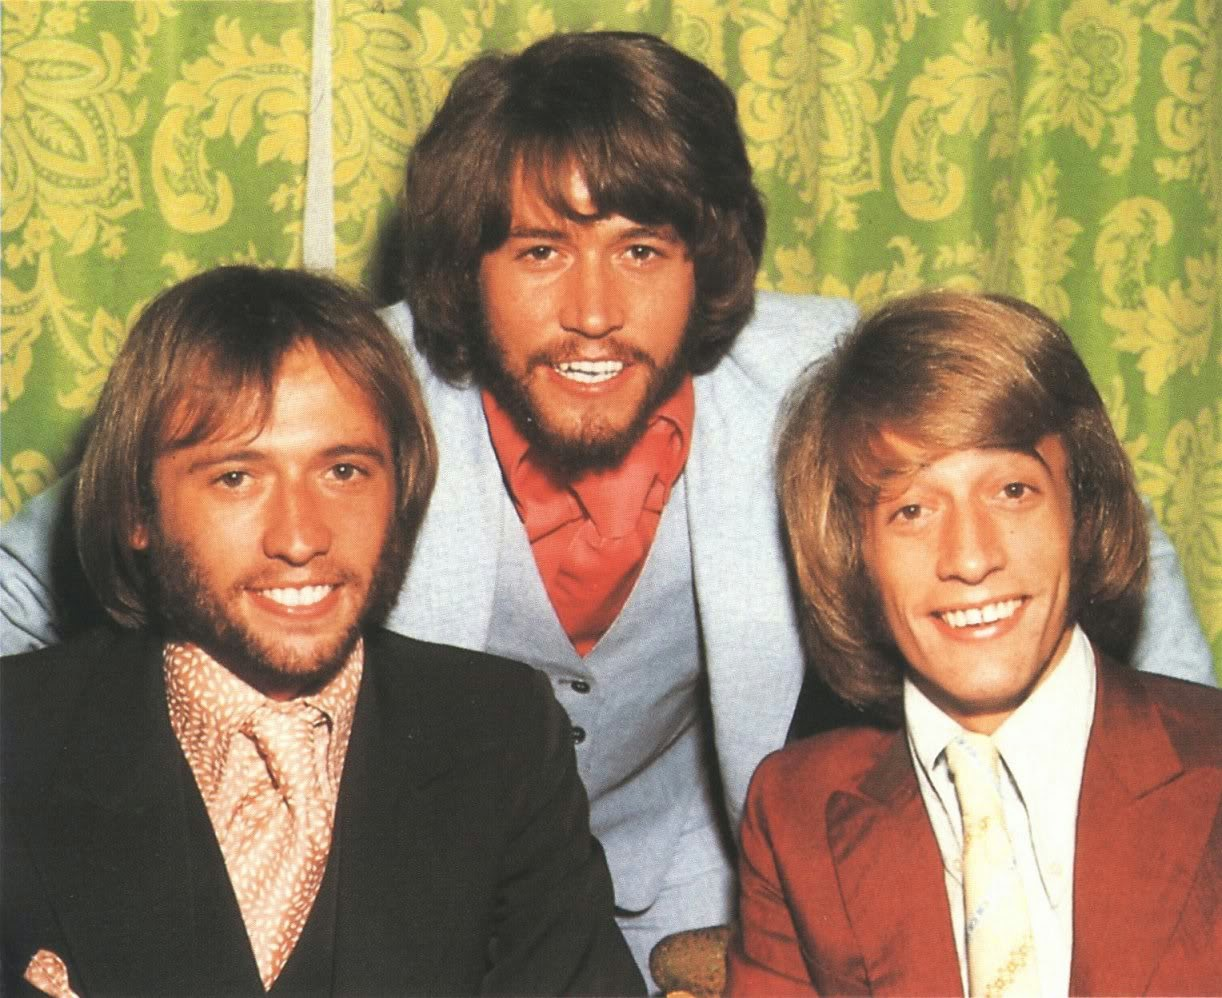 The Bee Gees were a pop music group that was formed in 1958. The group's line-up consisted of brothers Barry, Robin and Maurice Gibb. http://www.jinglejanglejungle.net/2015/01/bgs.html